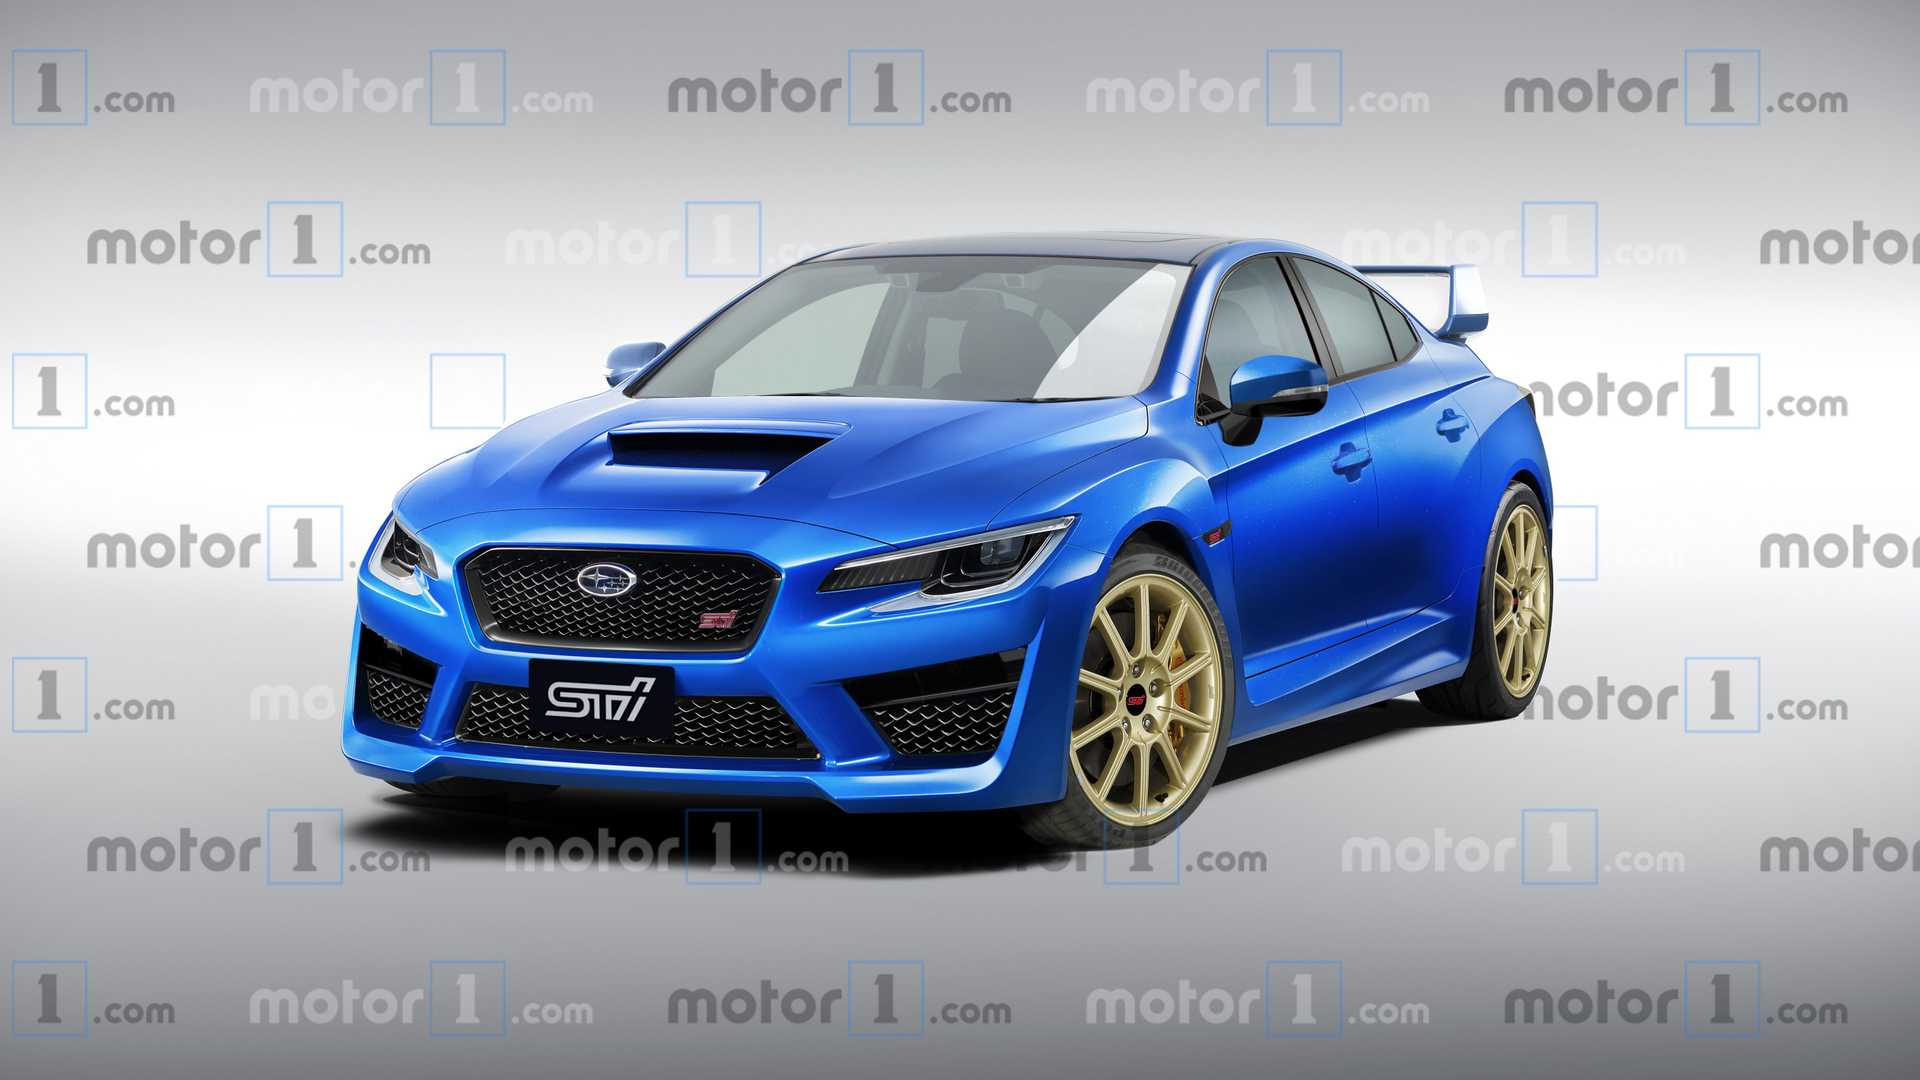 99 Great Subaru Sti Wrx 2020 Performance and New Engine by Subaru Sti Wrx 2020